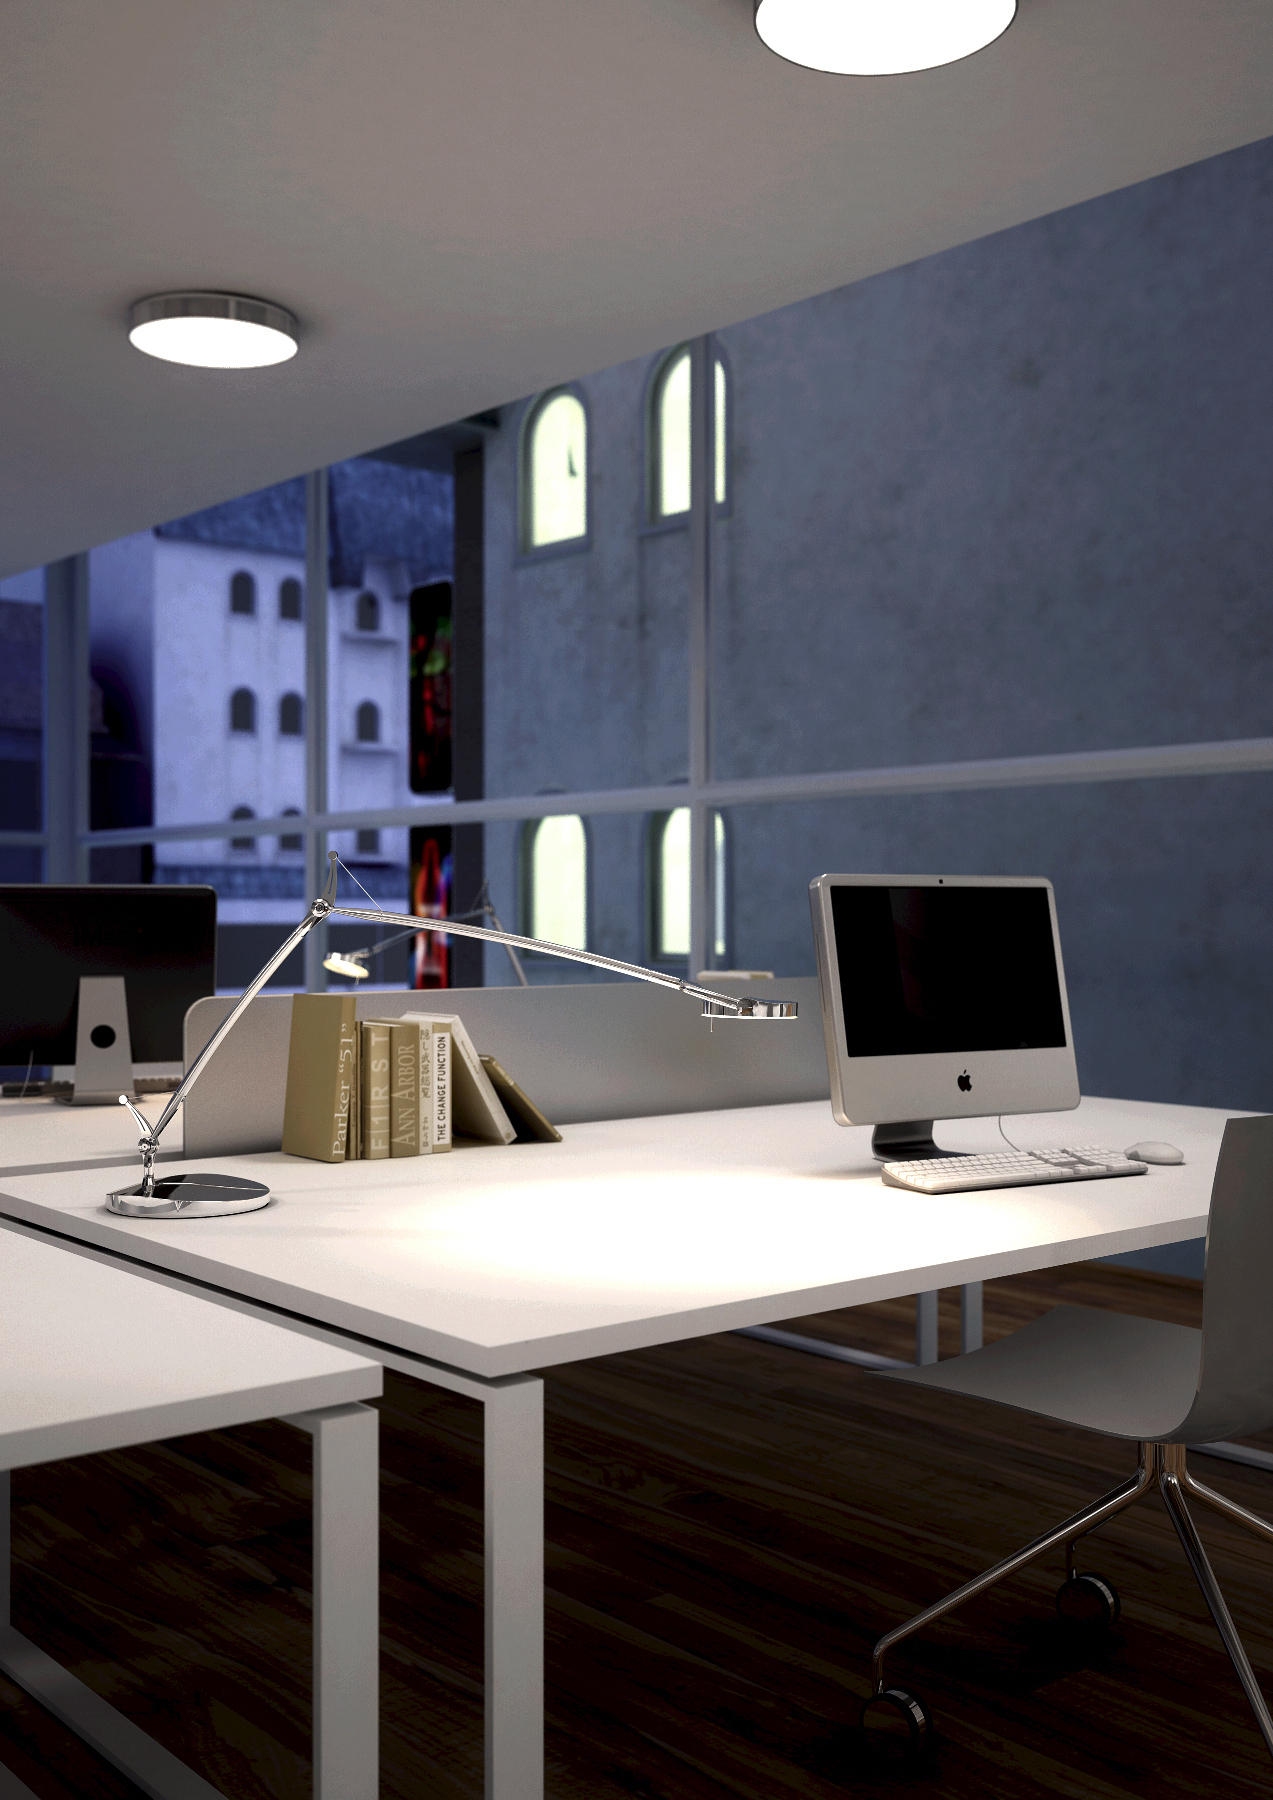 PERCEVALLED  Reading lights from Miln Iluminacin  Architonic